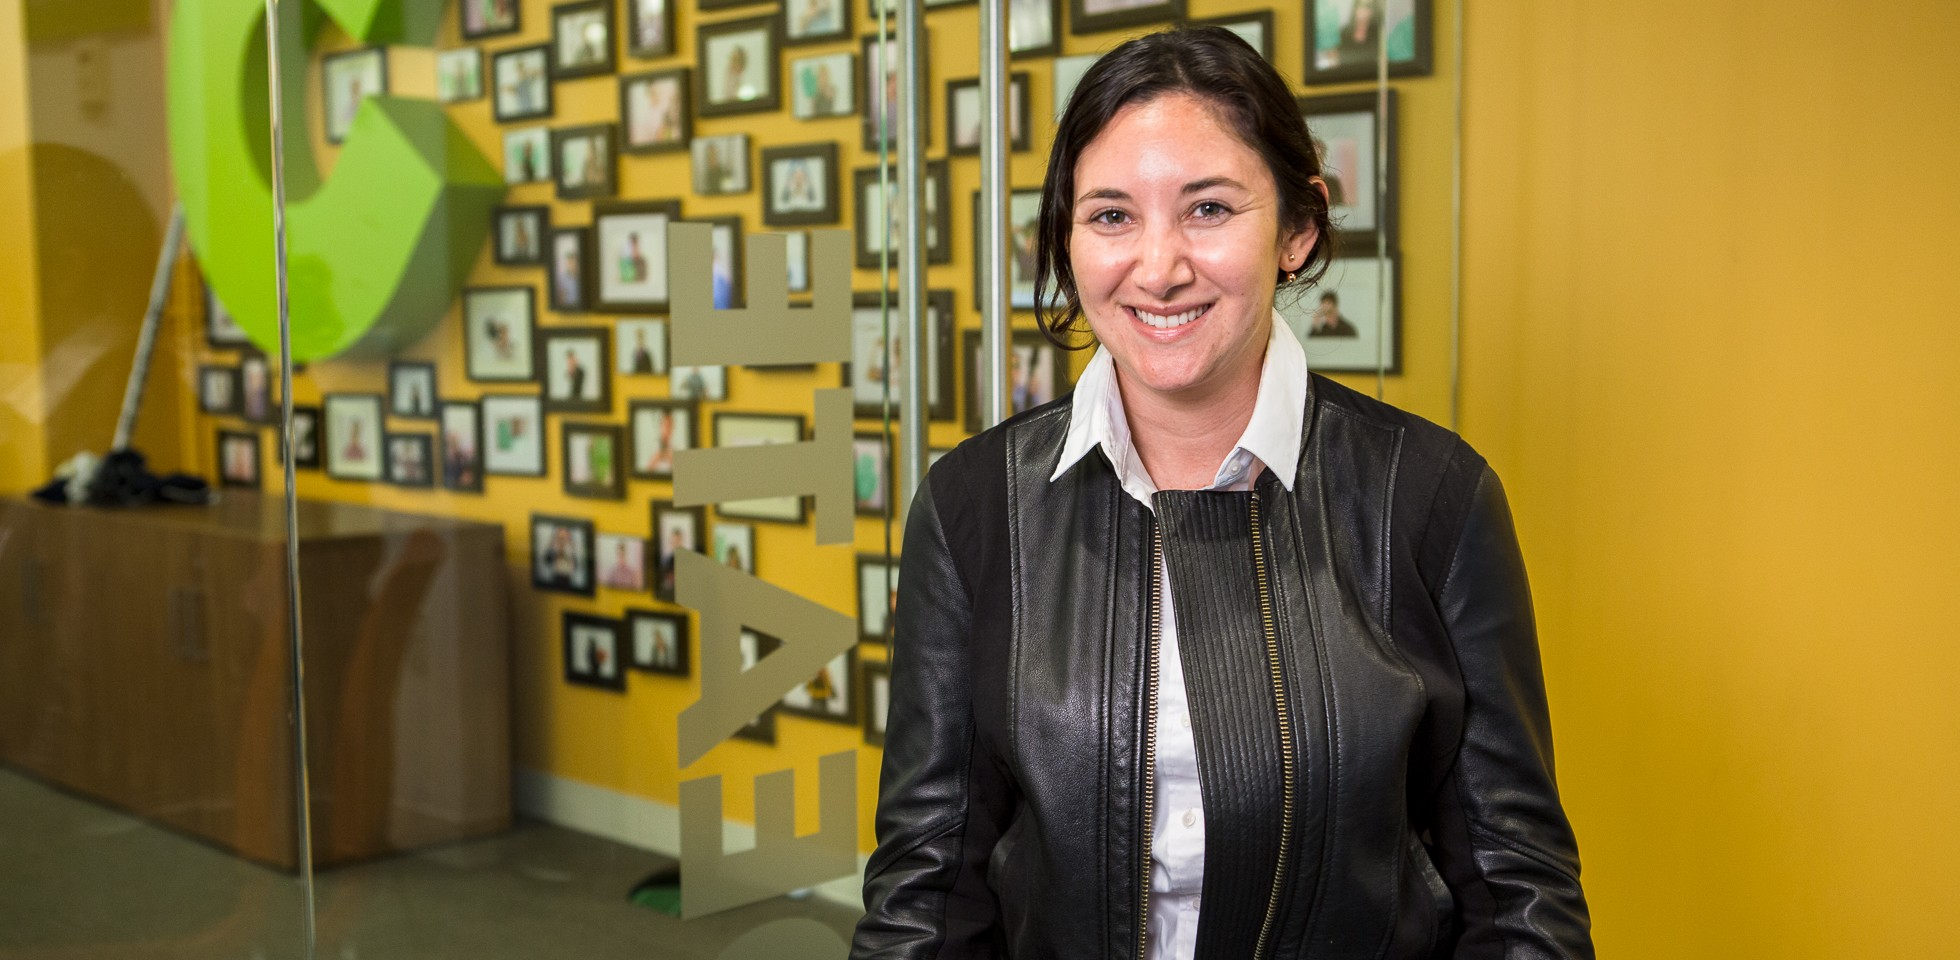 Erica Ehrlich, User Experience Design Lead - Conductor Careers